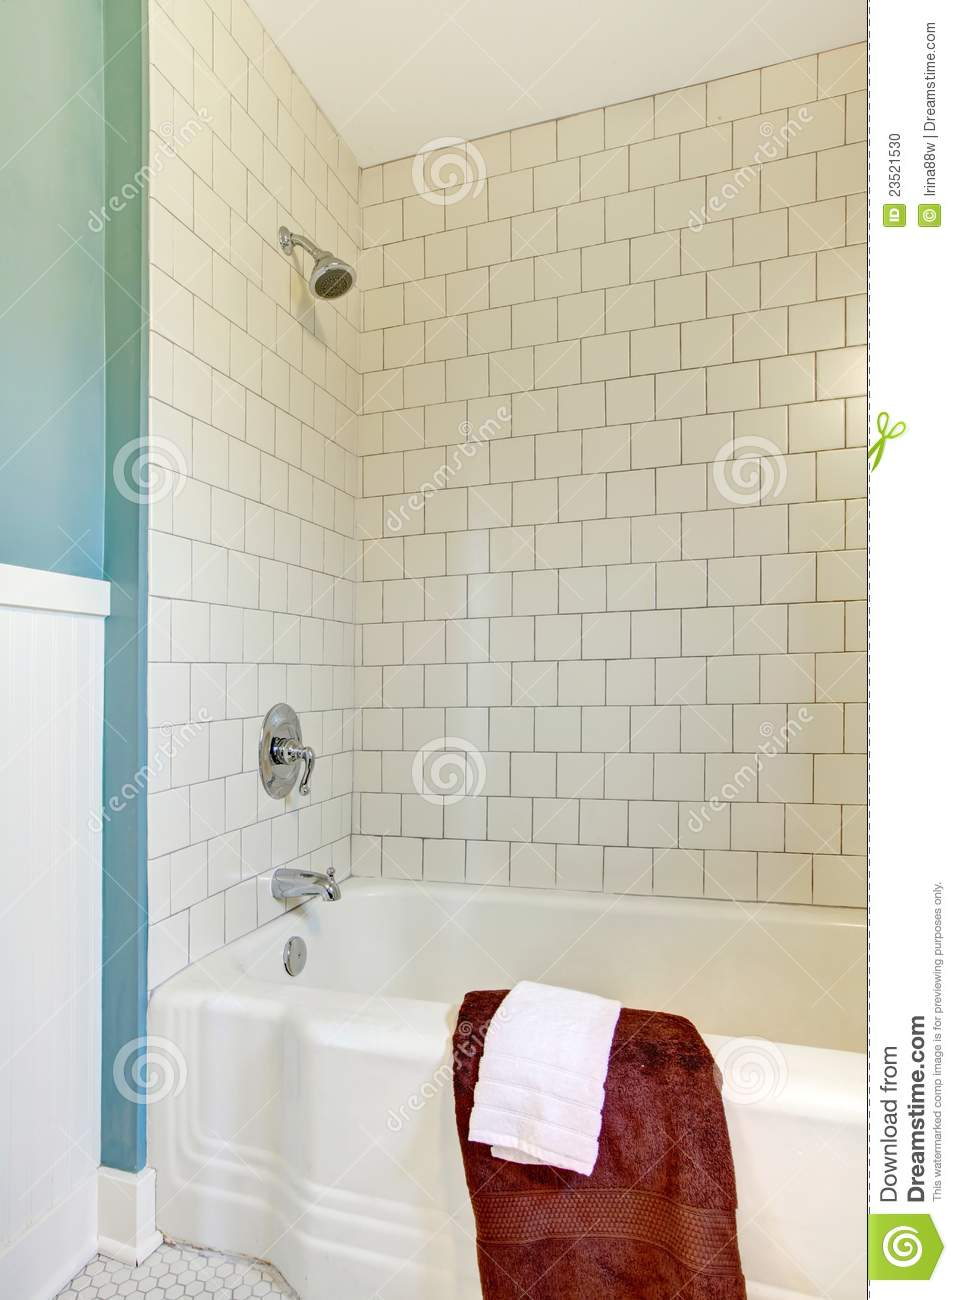 Shower Tub White Classic Tile And Blue Wall Stock Photo Image Of Empty Powder 23521530